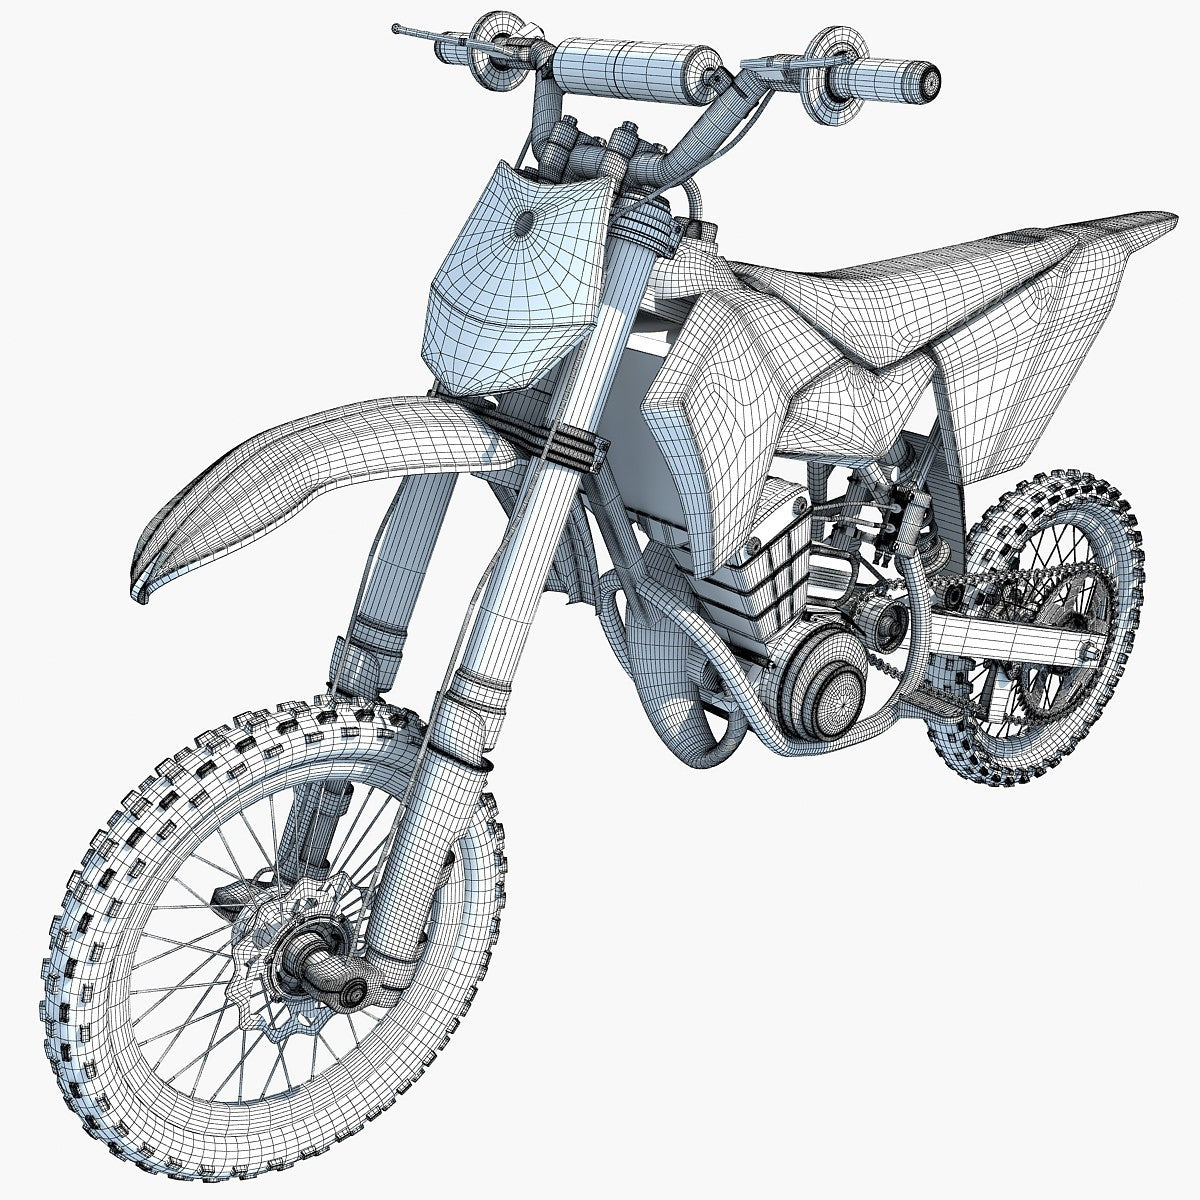 3D Motorcycles Models